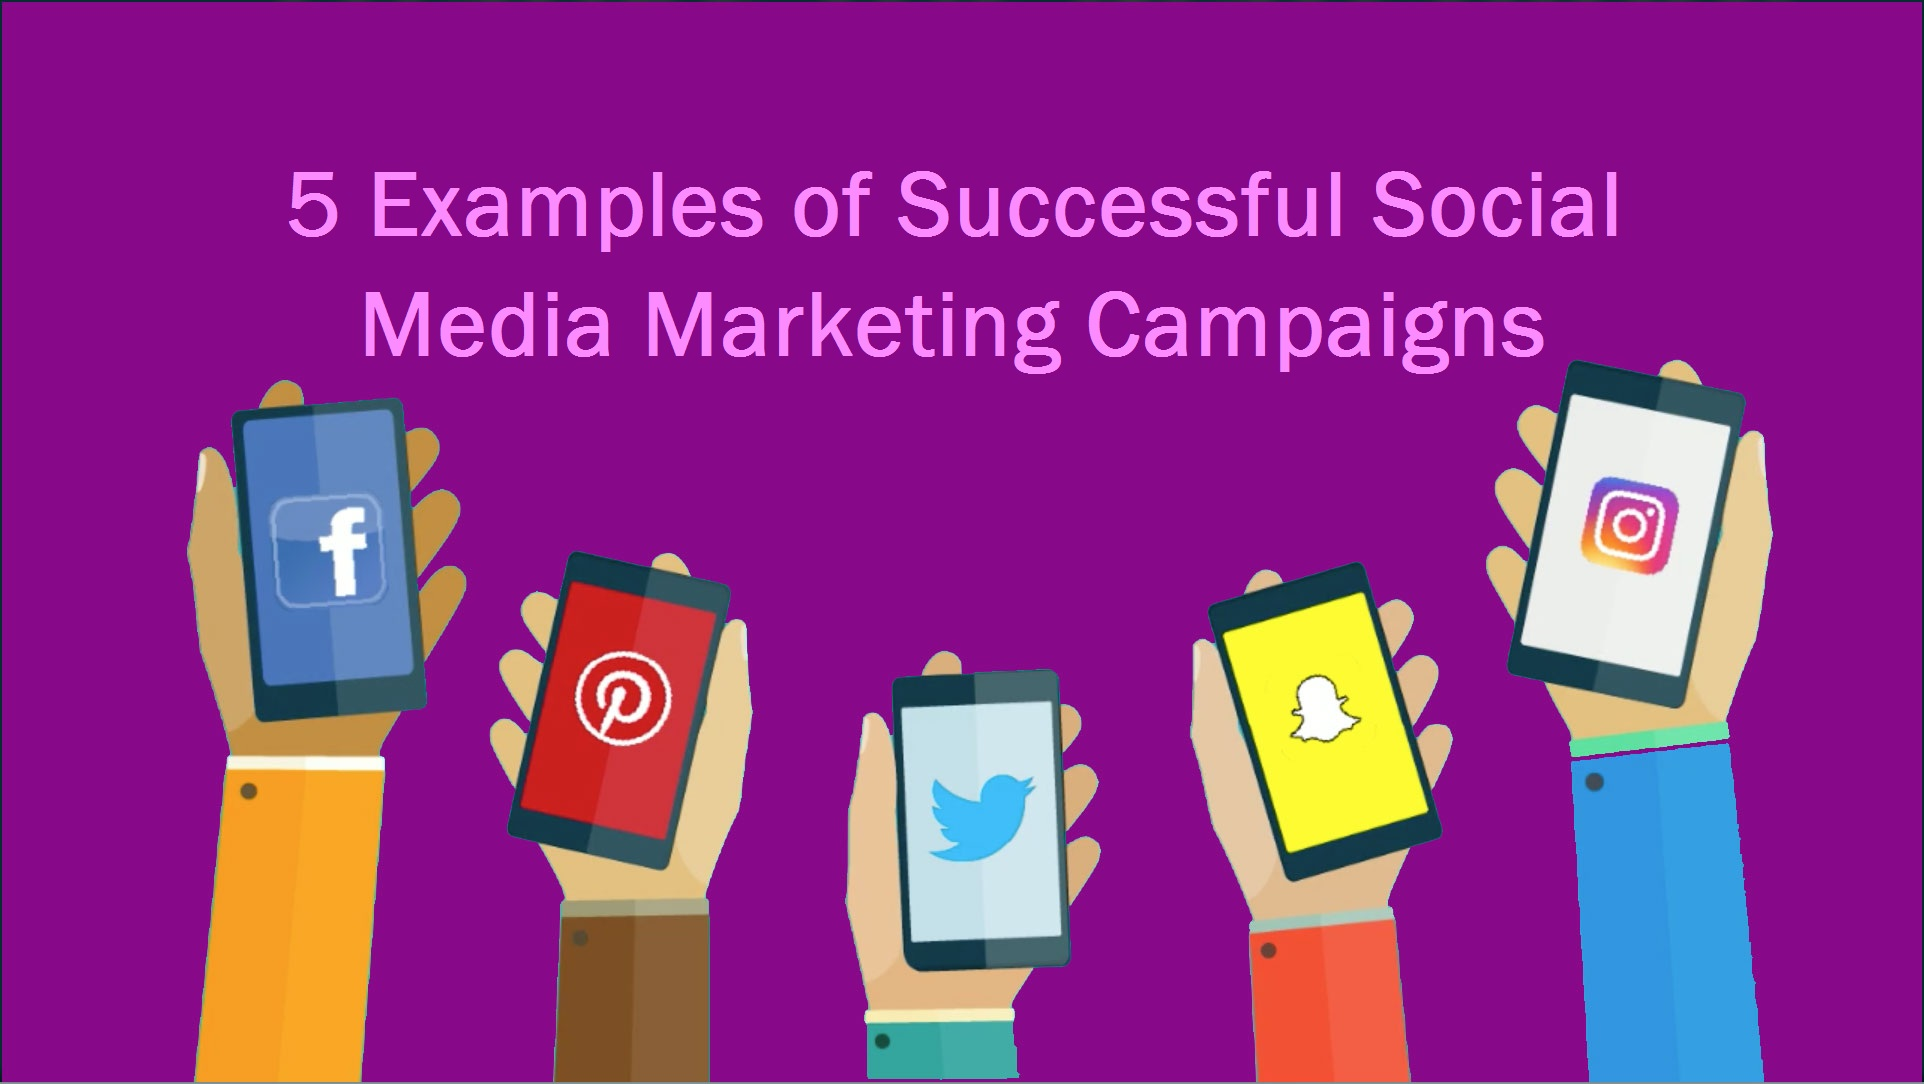 5 examples of successful social media marketing campaigns1jpgfit19241084ssl1